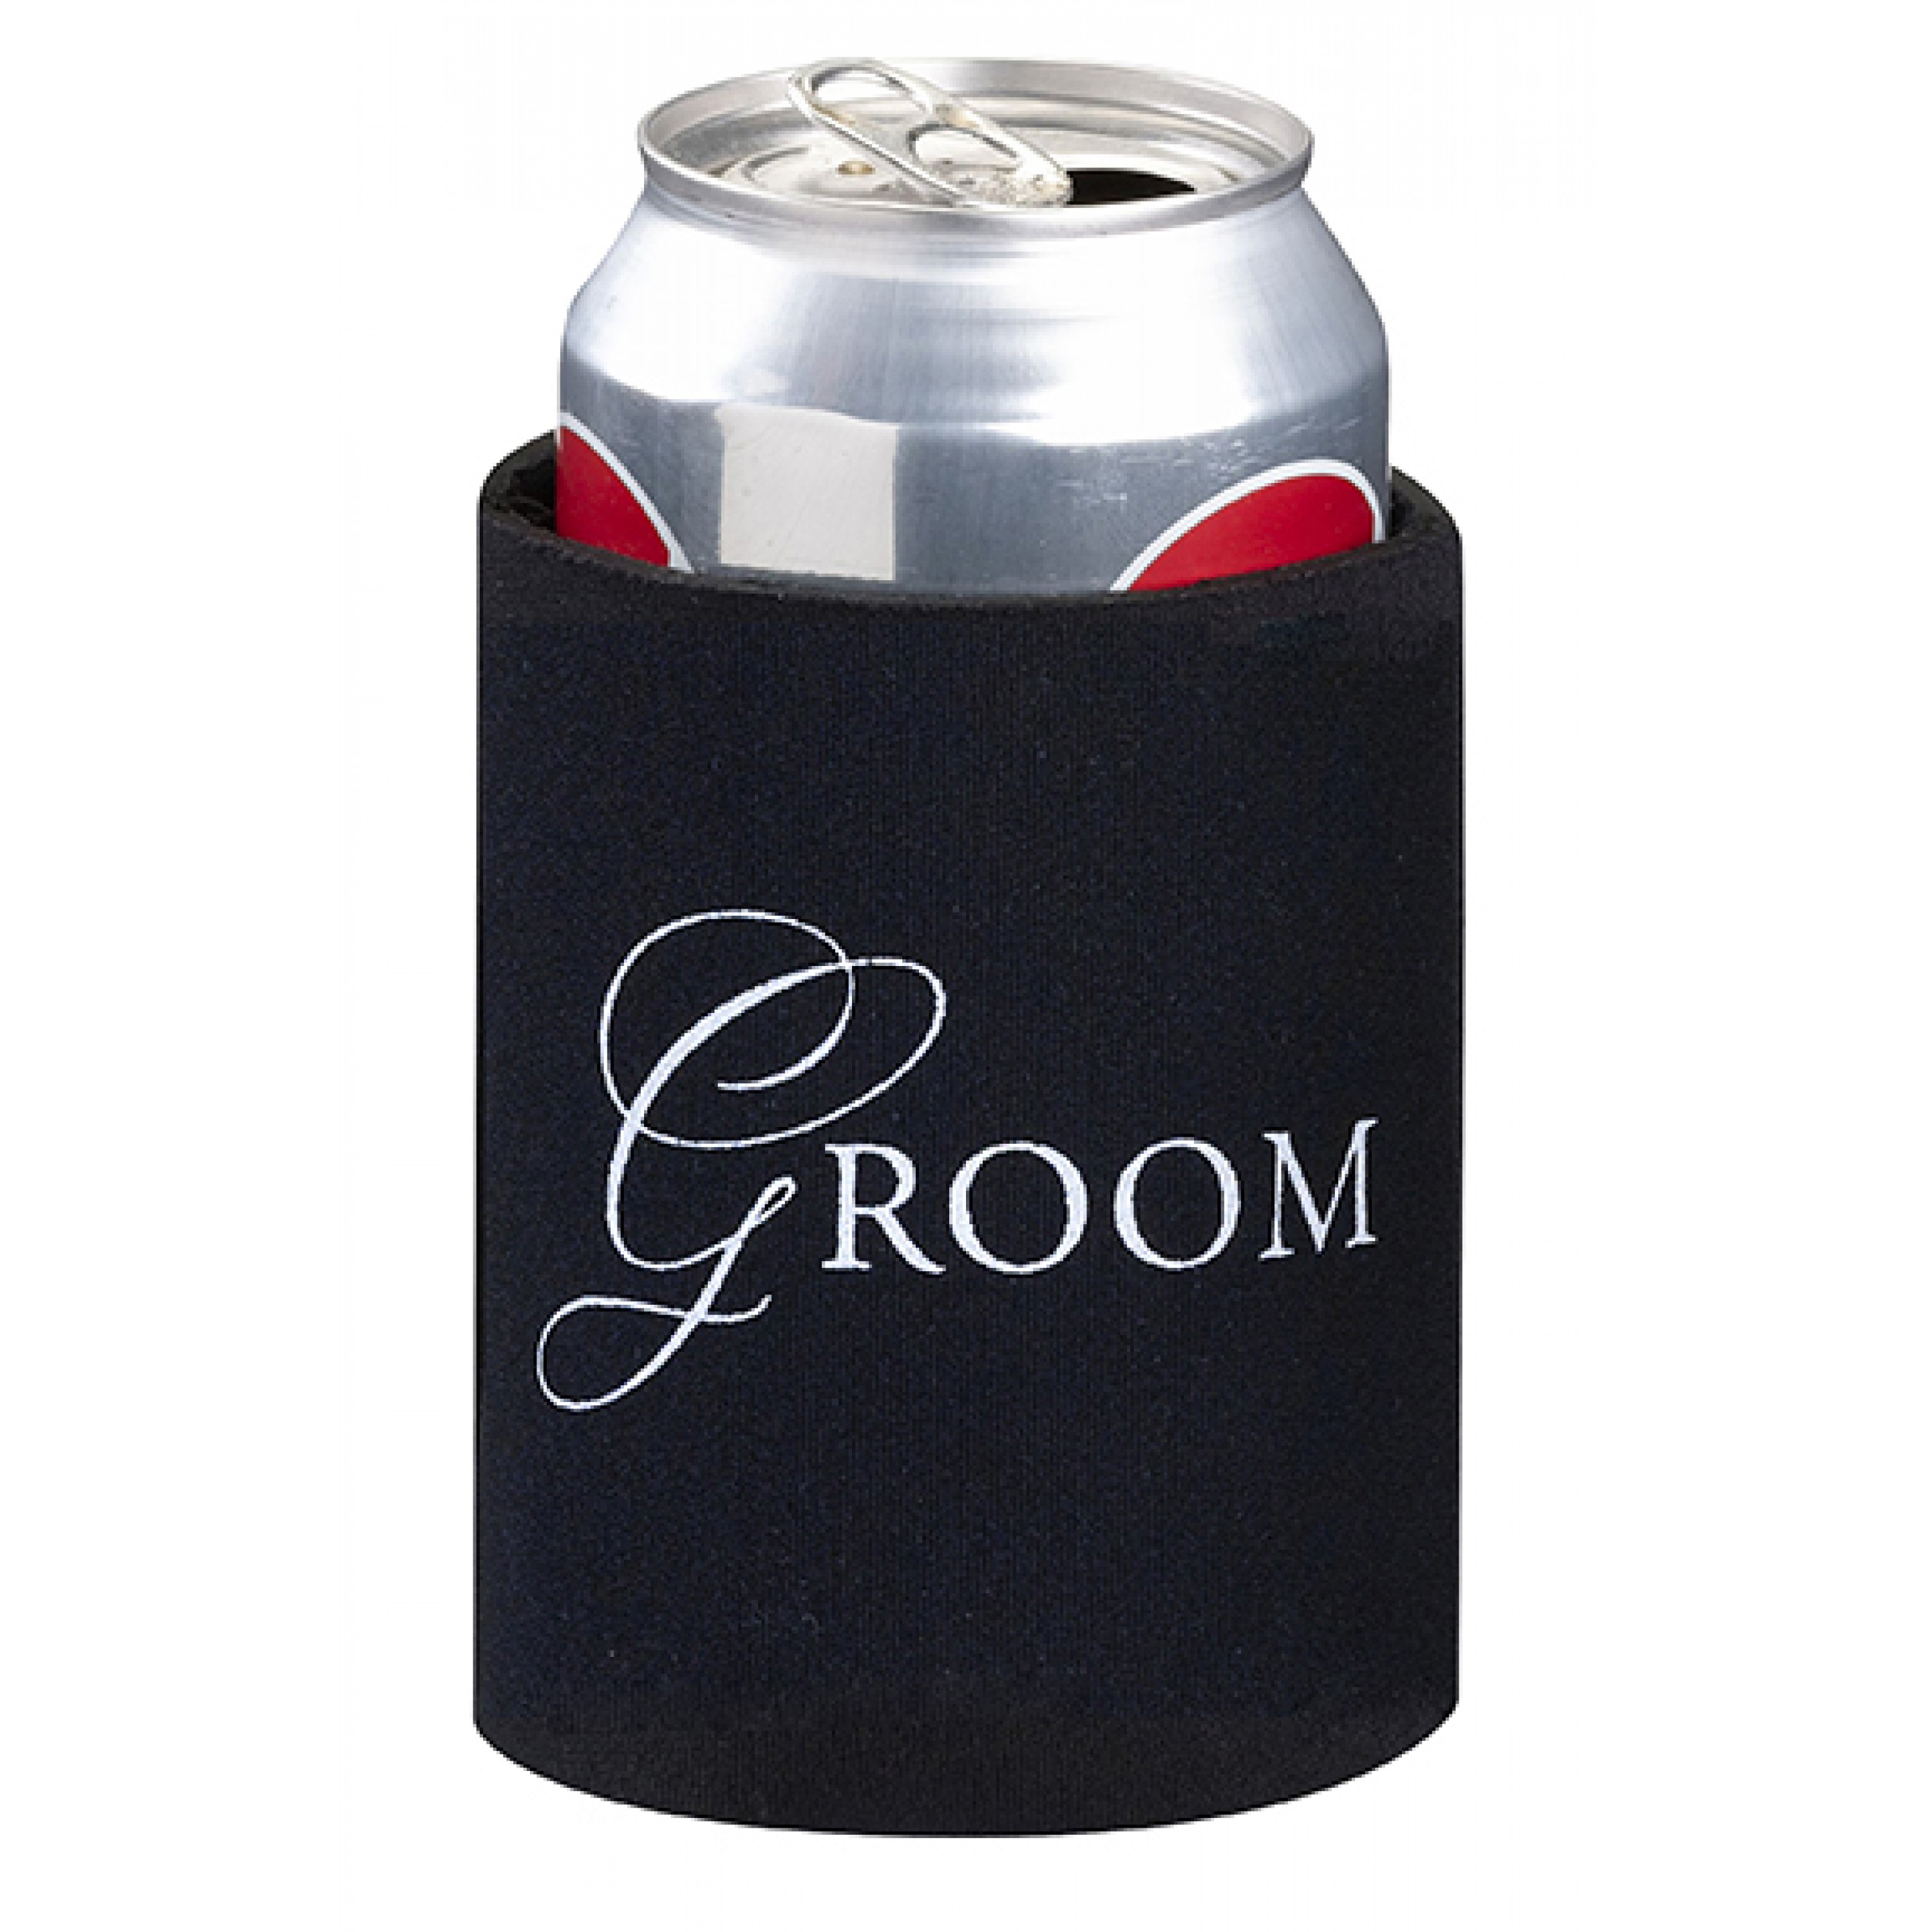 Fun Stuff for Grooms (5)